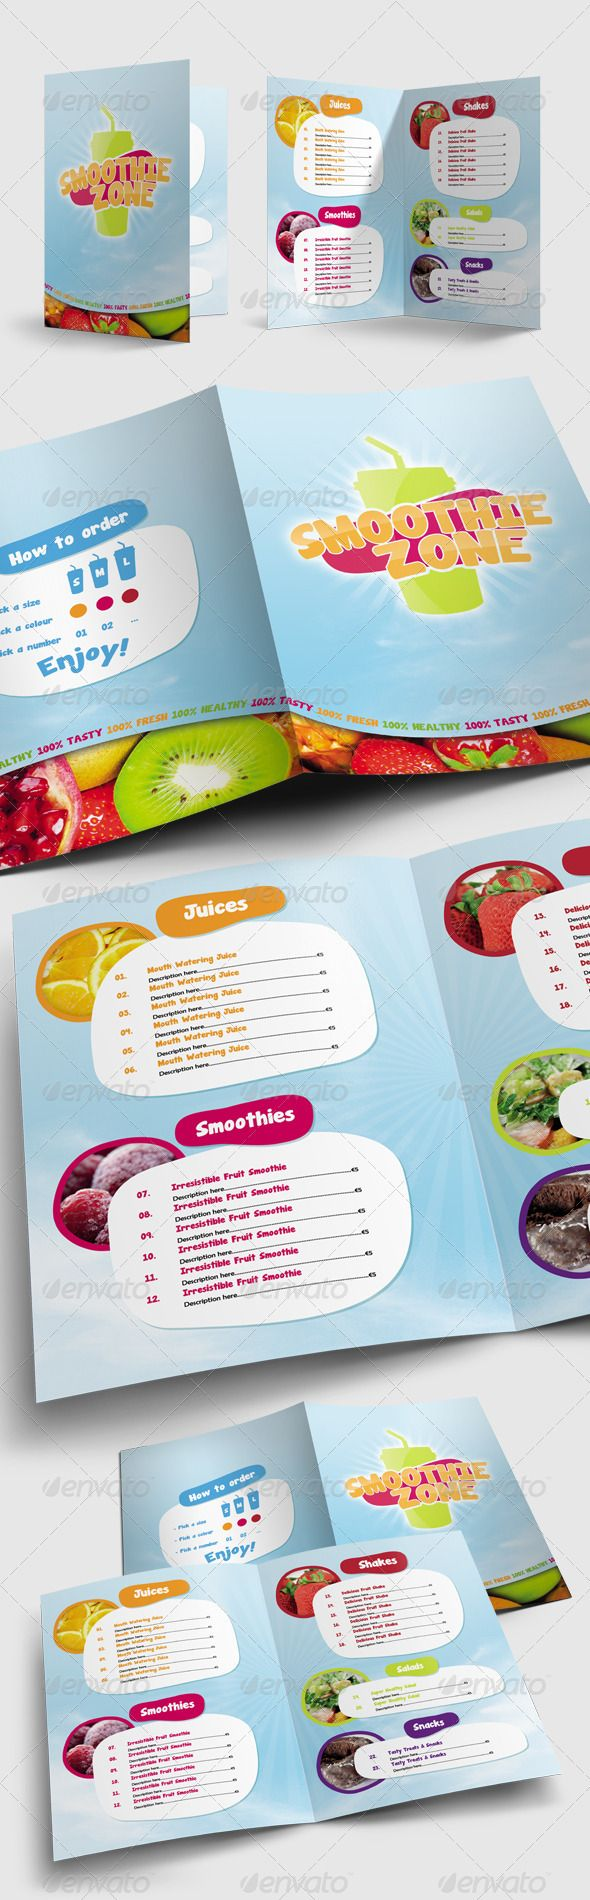 Juice and Smoothie Menu - Smoothie Zone - Food Menus Print Templates